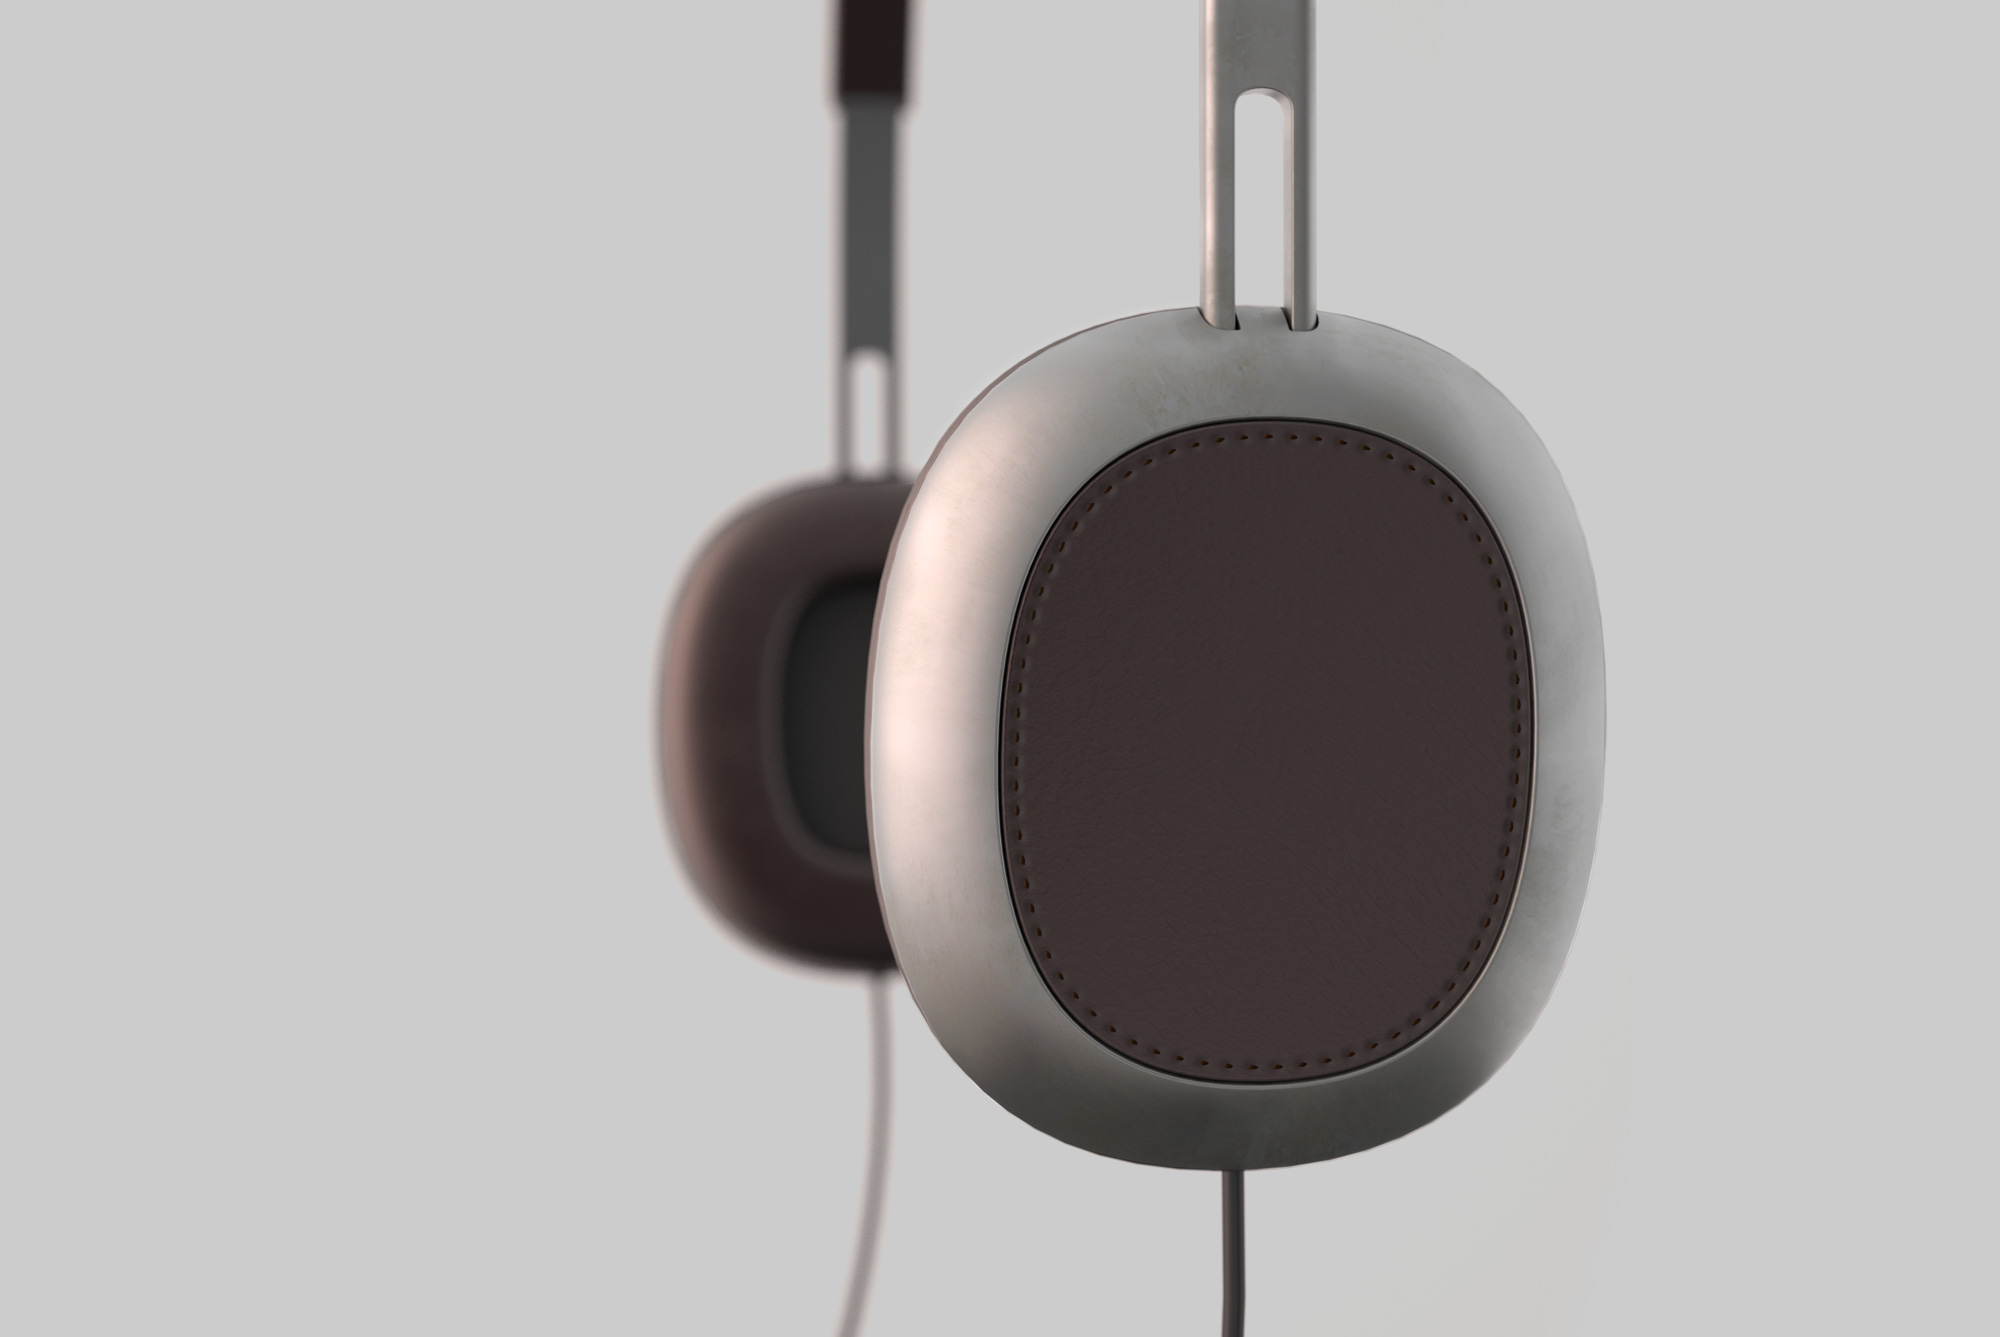 Hannes_Geipel_headphones_design_01.jpg